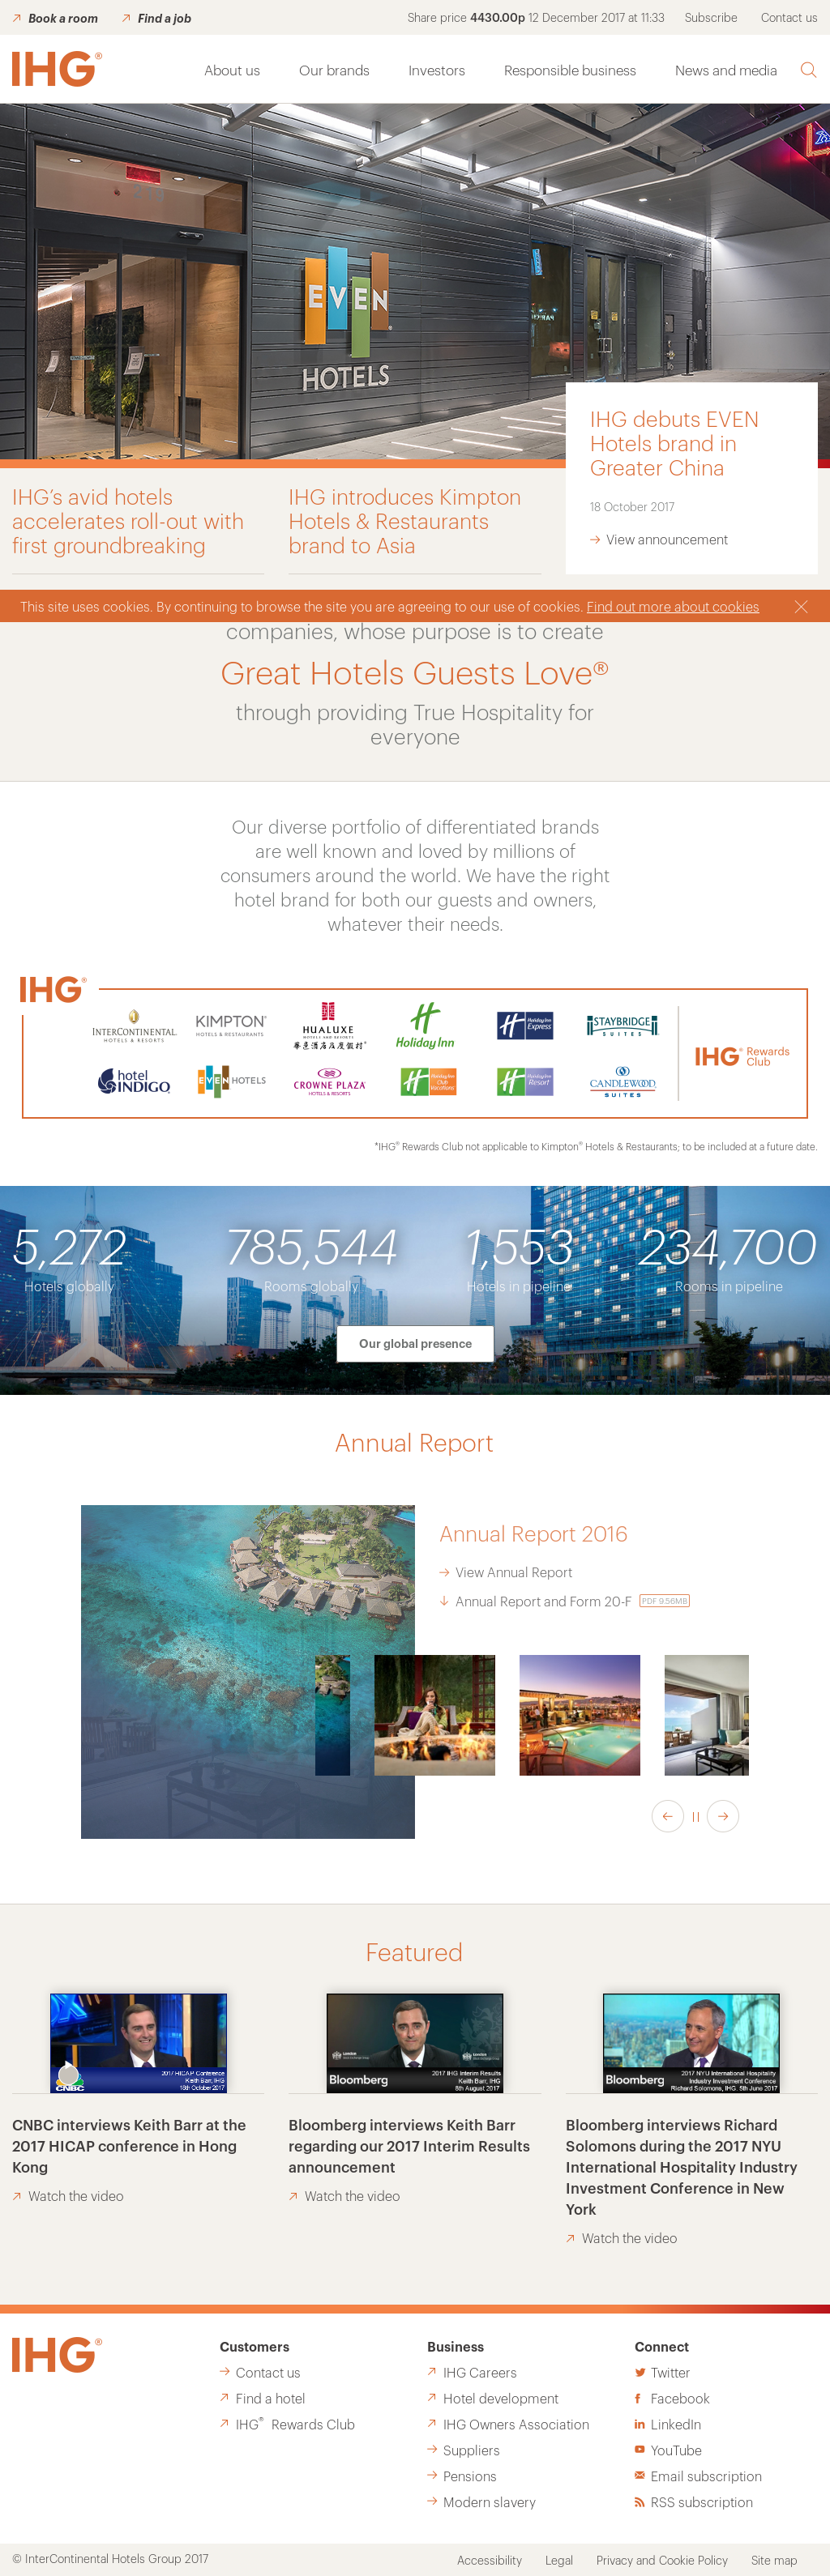 IHG Competitors, Revenue and Employees - Owler Company Profile